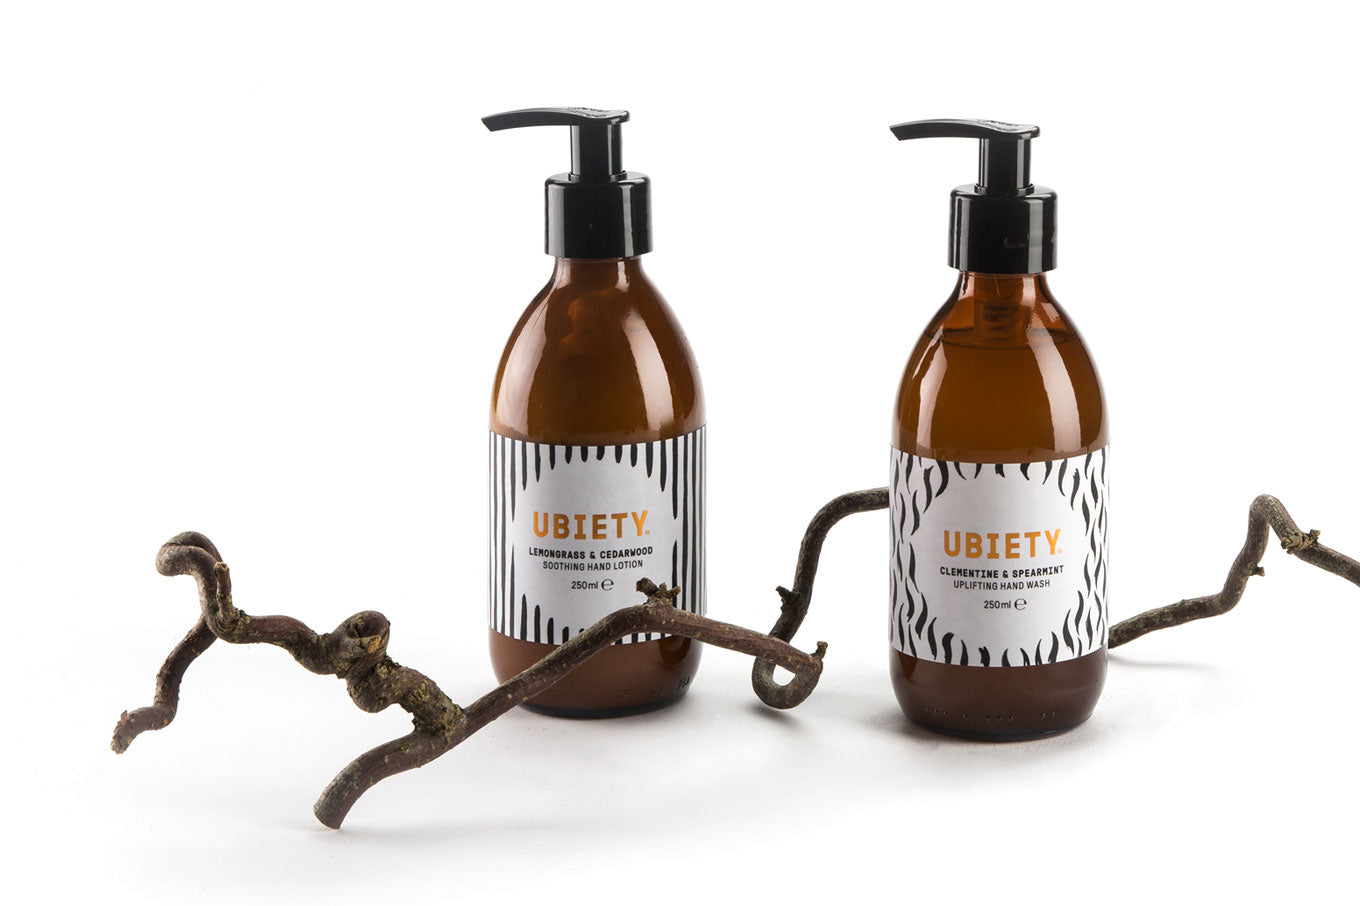 Our uplifting hand wash and soothing hand lotion